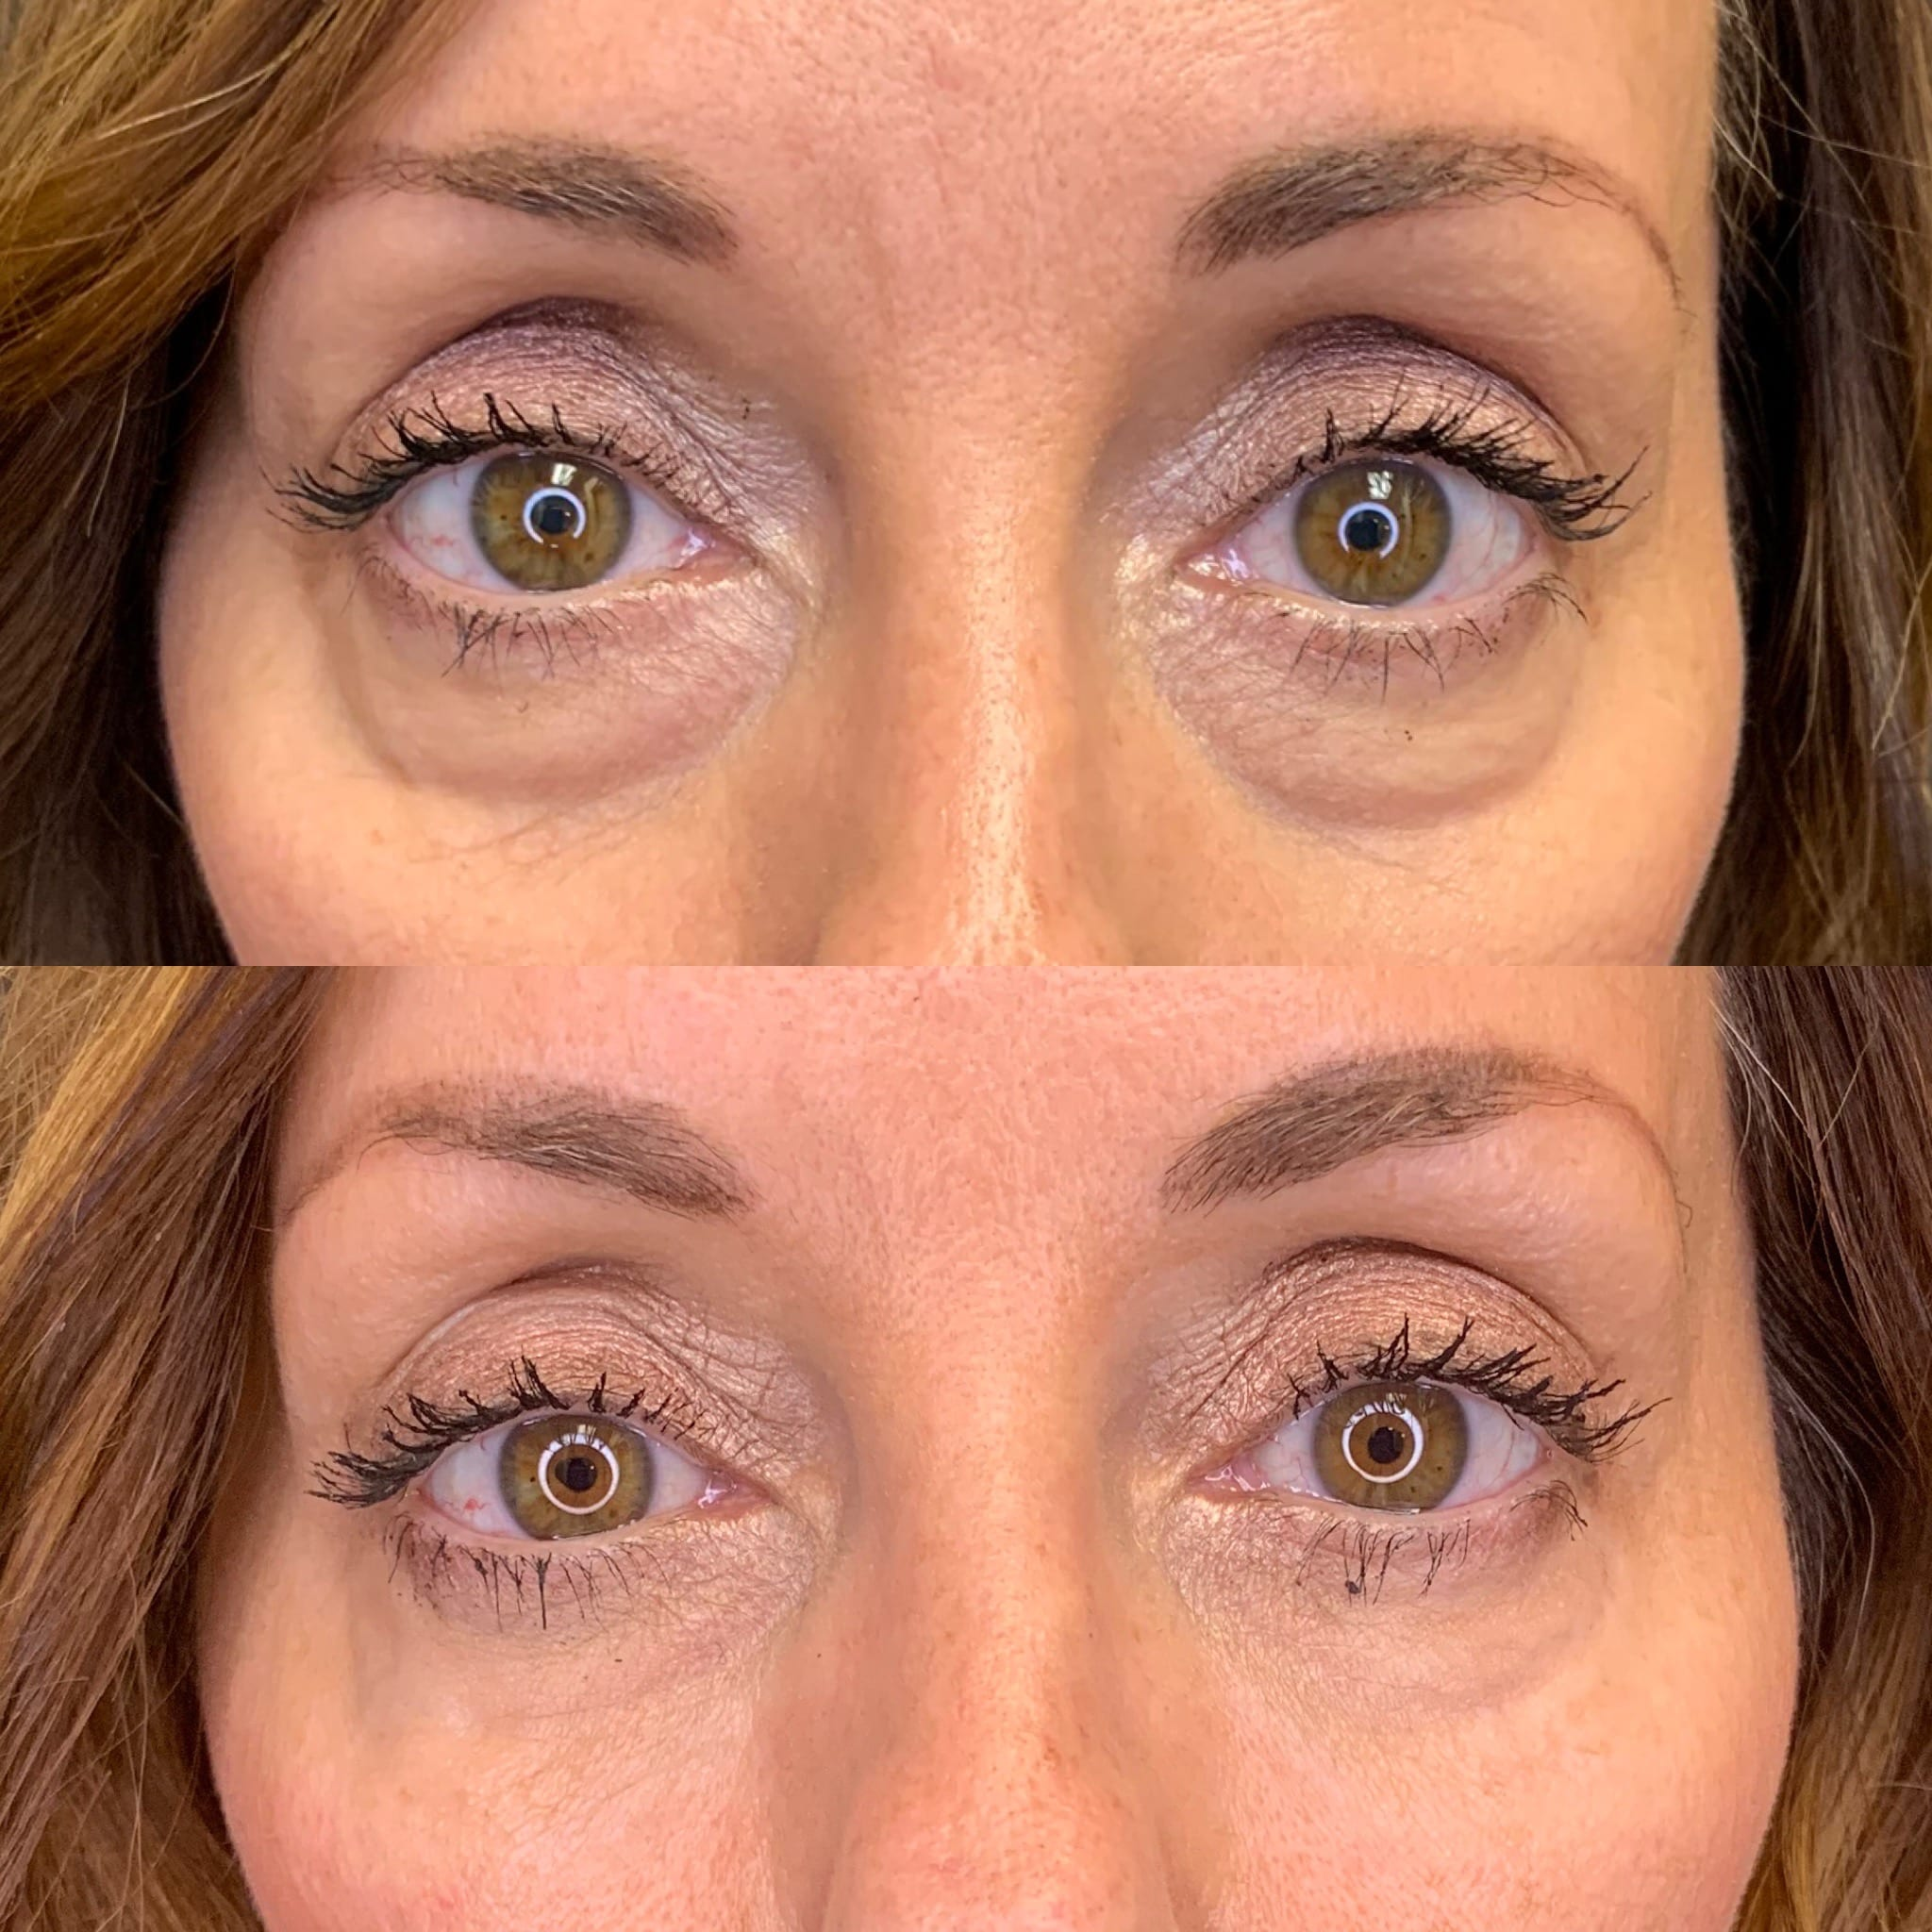 53 y/o Caucasian F 2 weeks after 1 syringe of volbella to diminish the appearance of her eye bags.